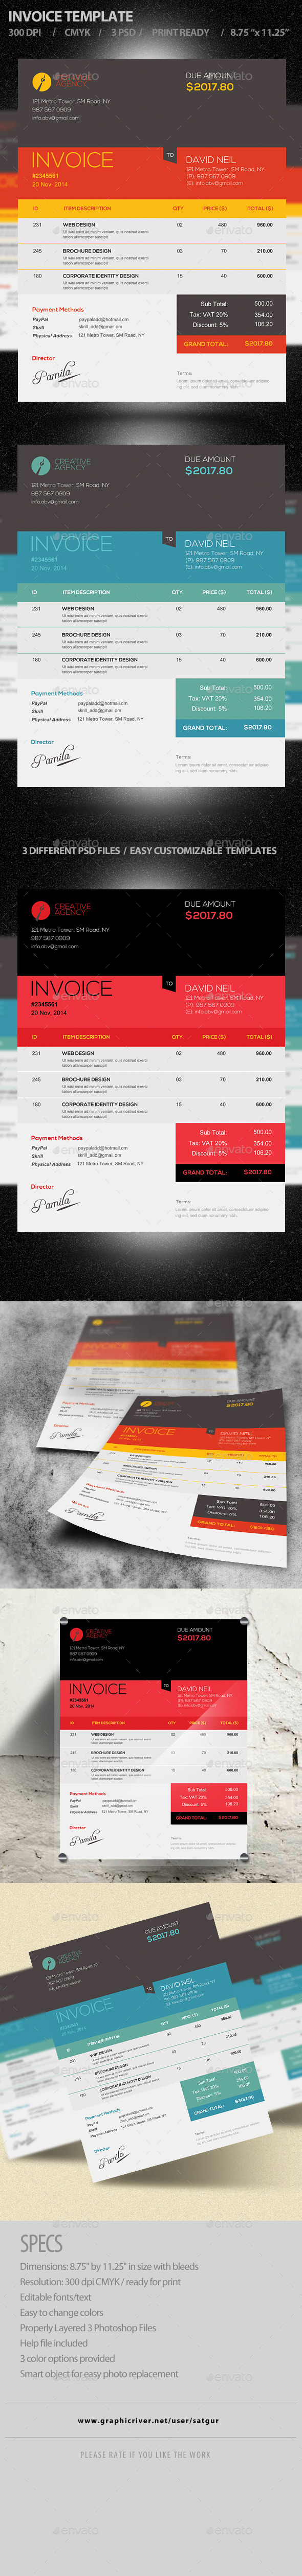 Invoice Template PSD - Proposals & Invoices Stationery